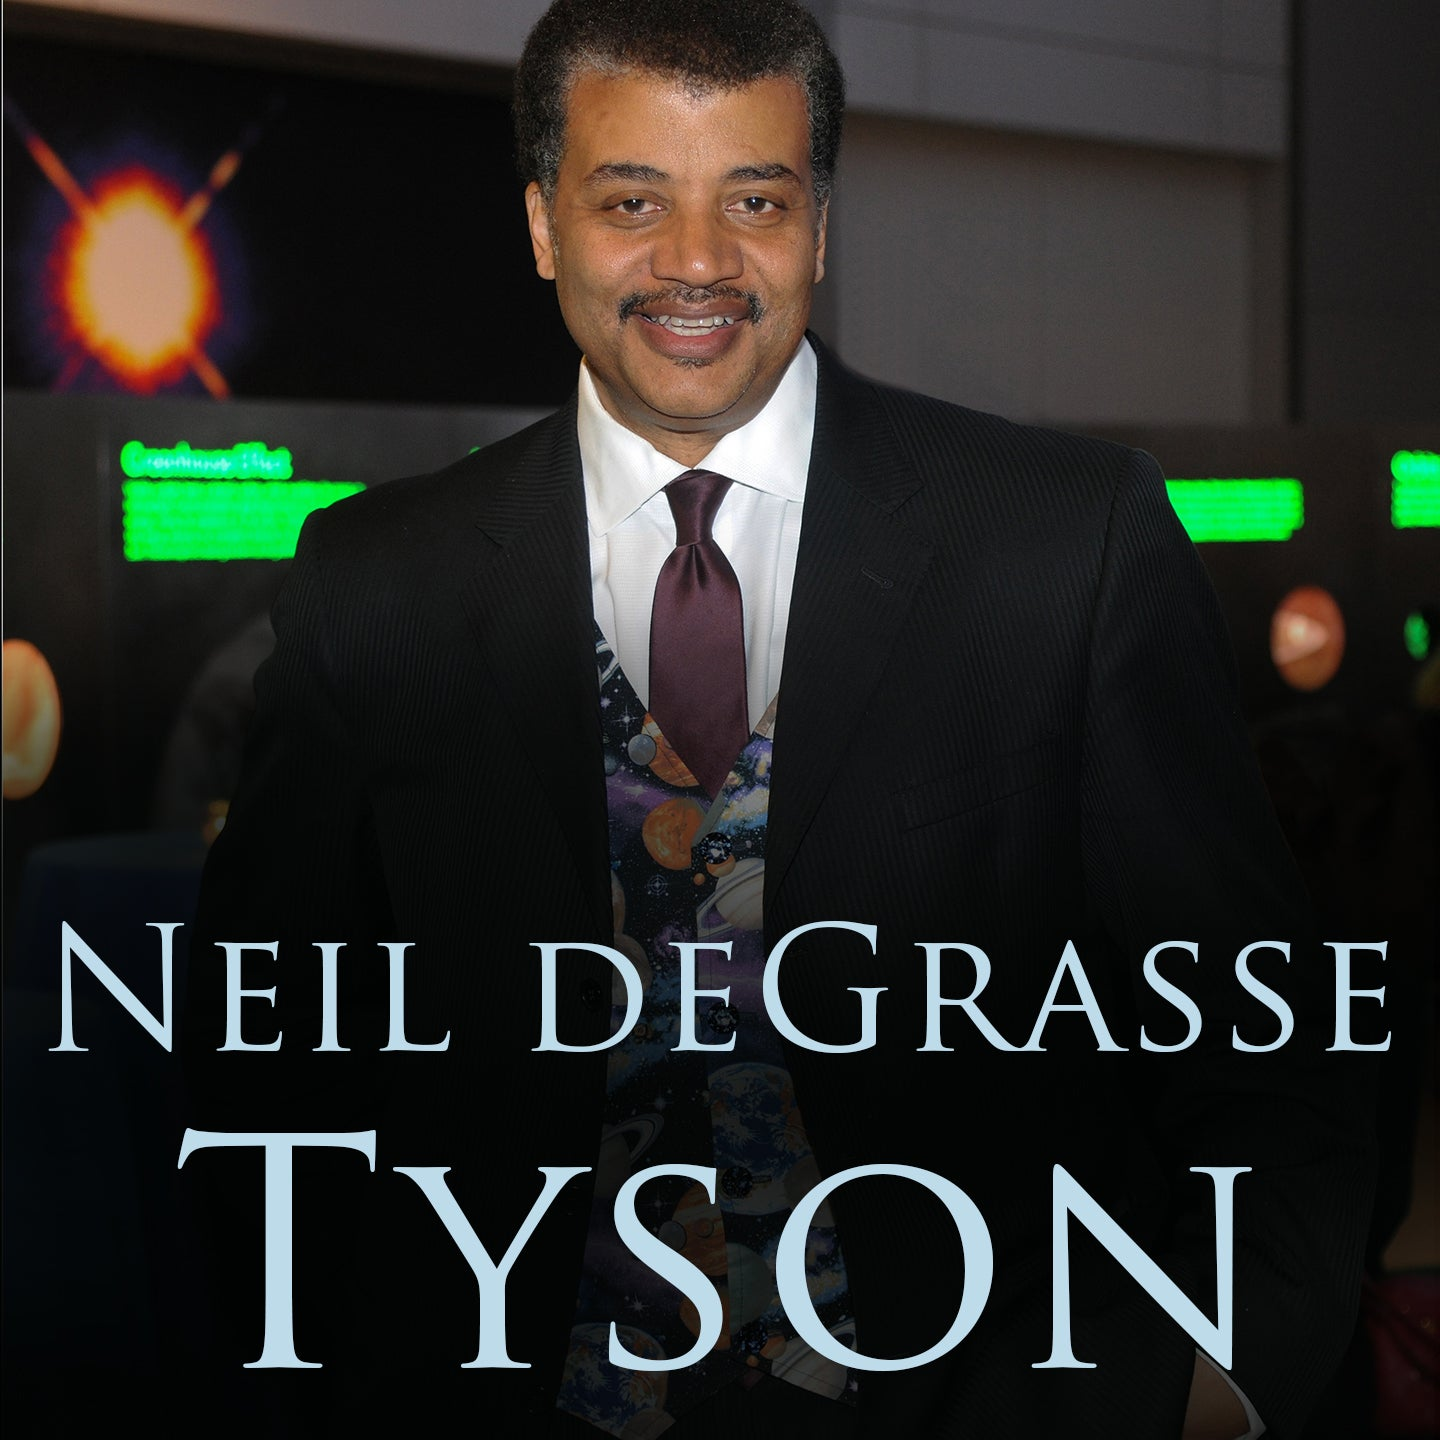 Neil deGrasse Tyson | Blumenthal Performing Arts